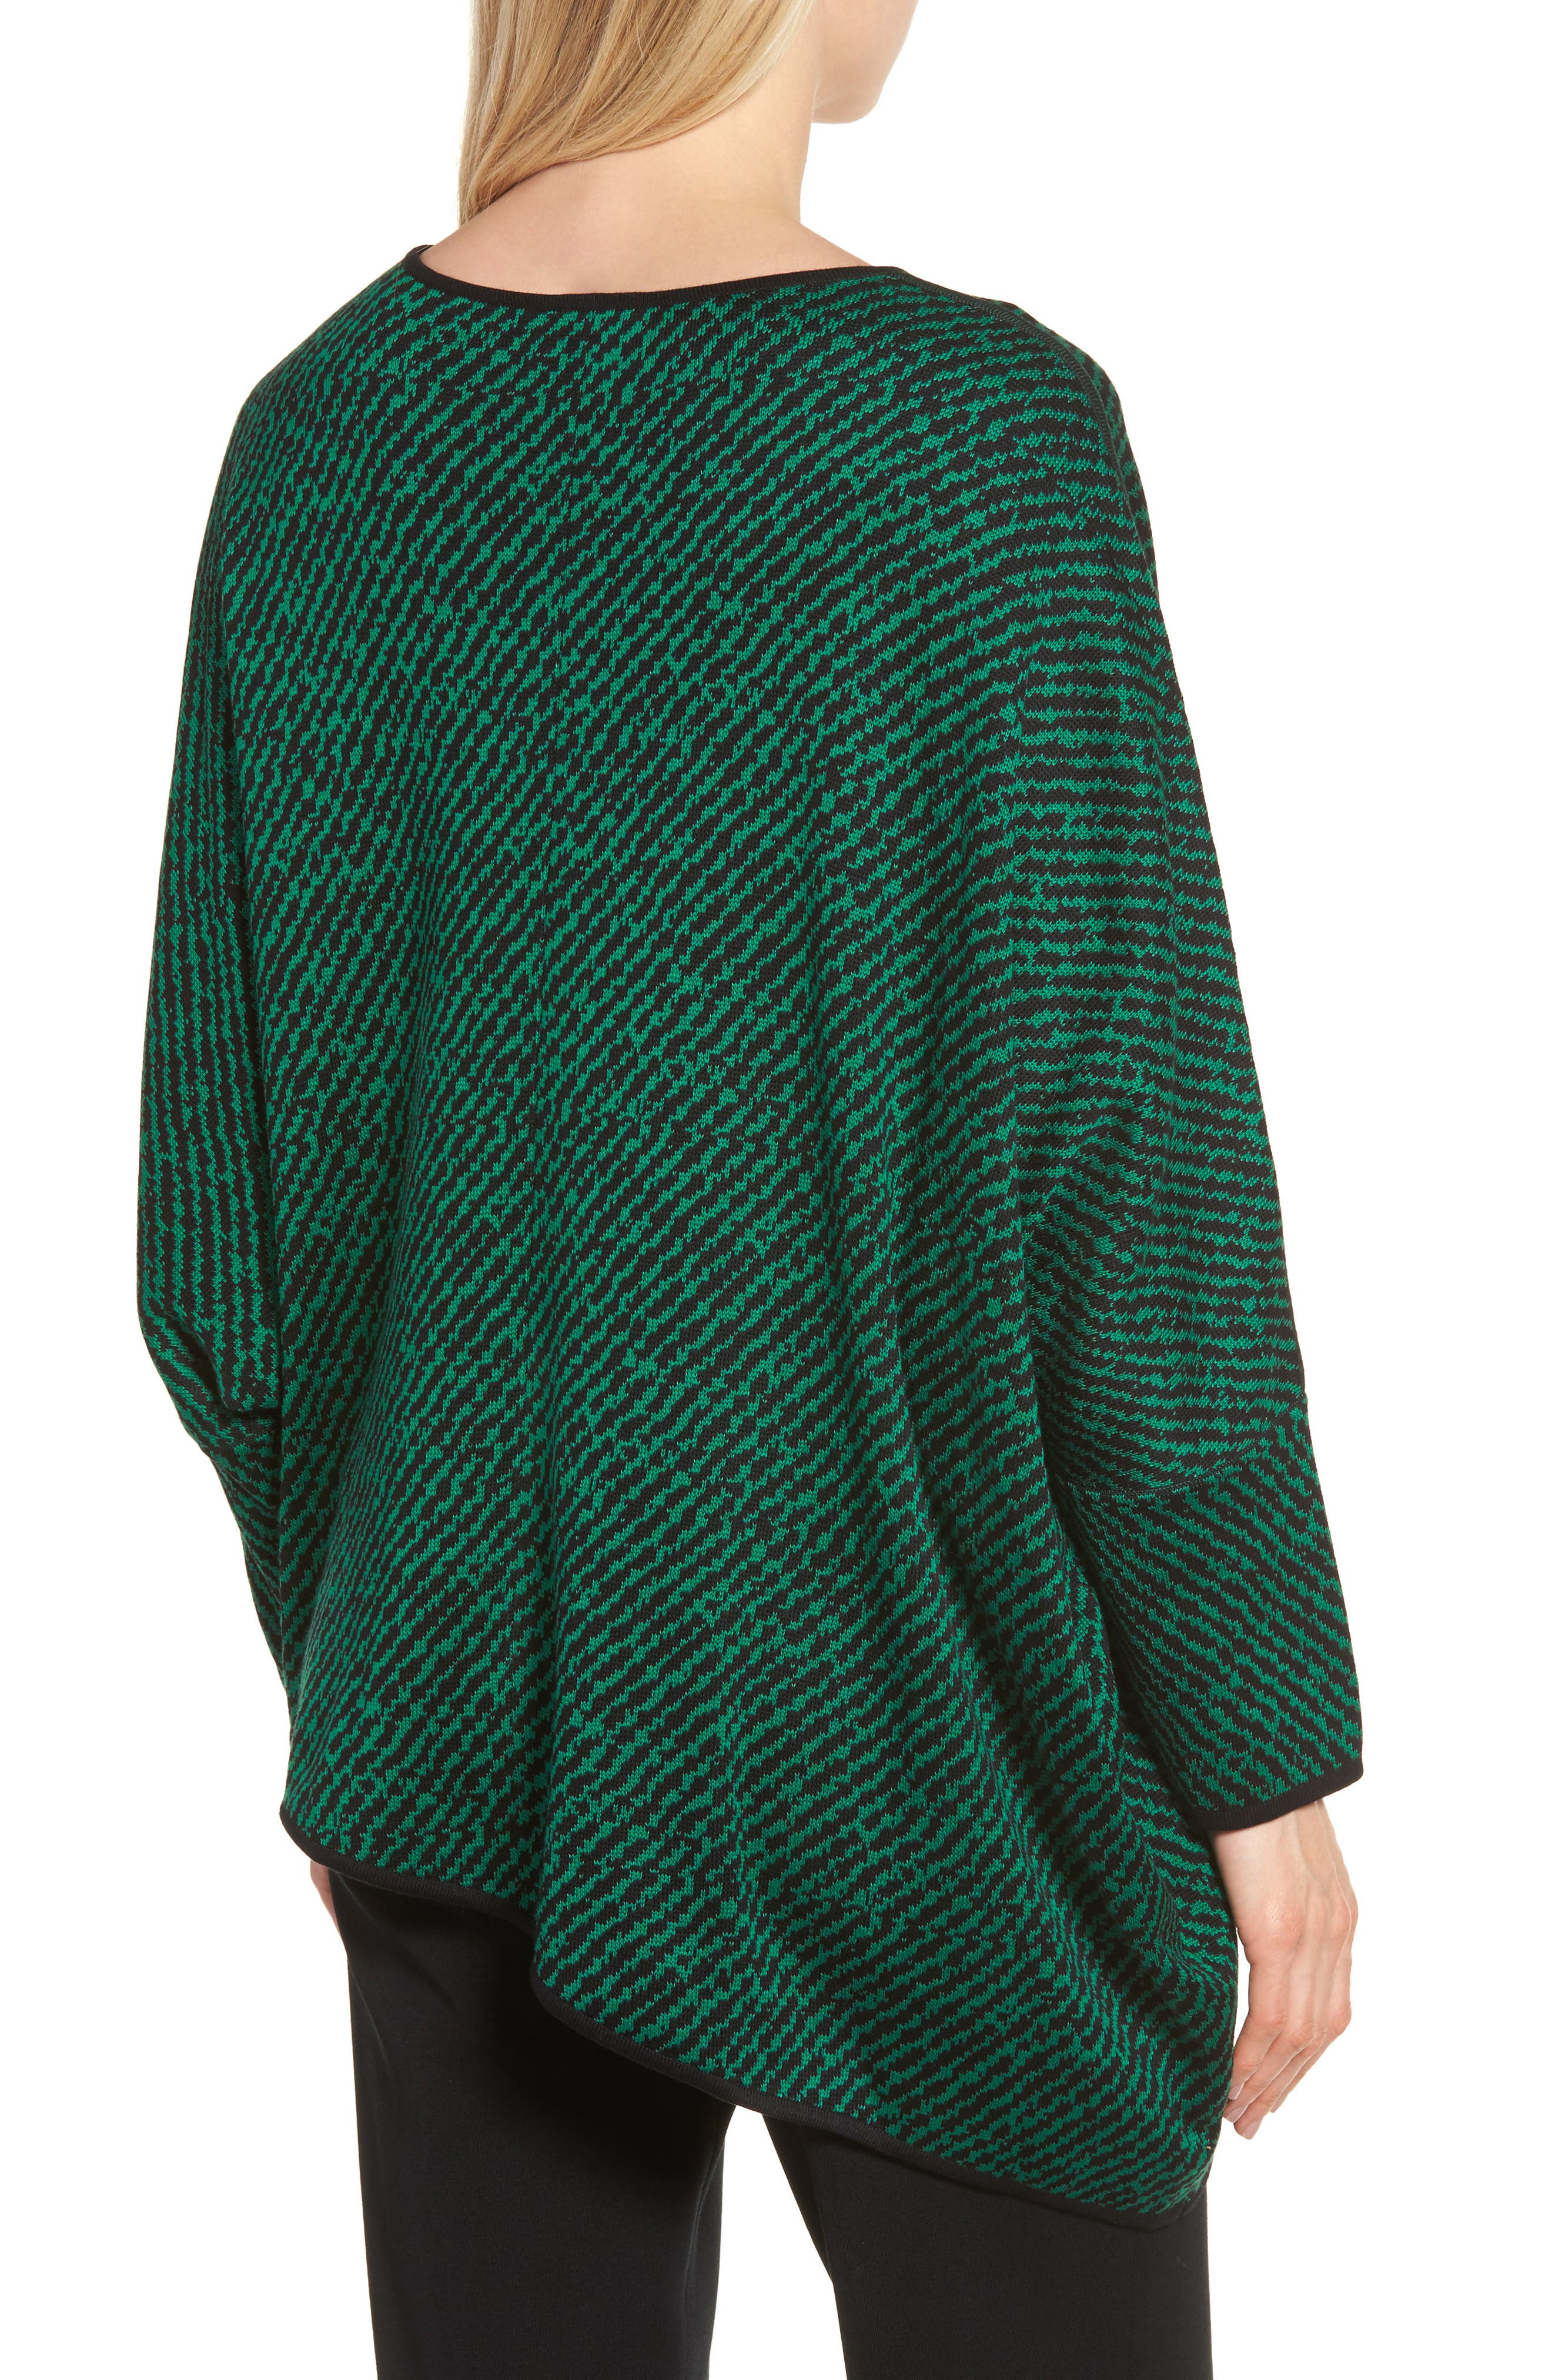 Asymmetrical Sweater,                             Alternate thumbnail 2, color,                             Black/ Viridian